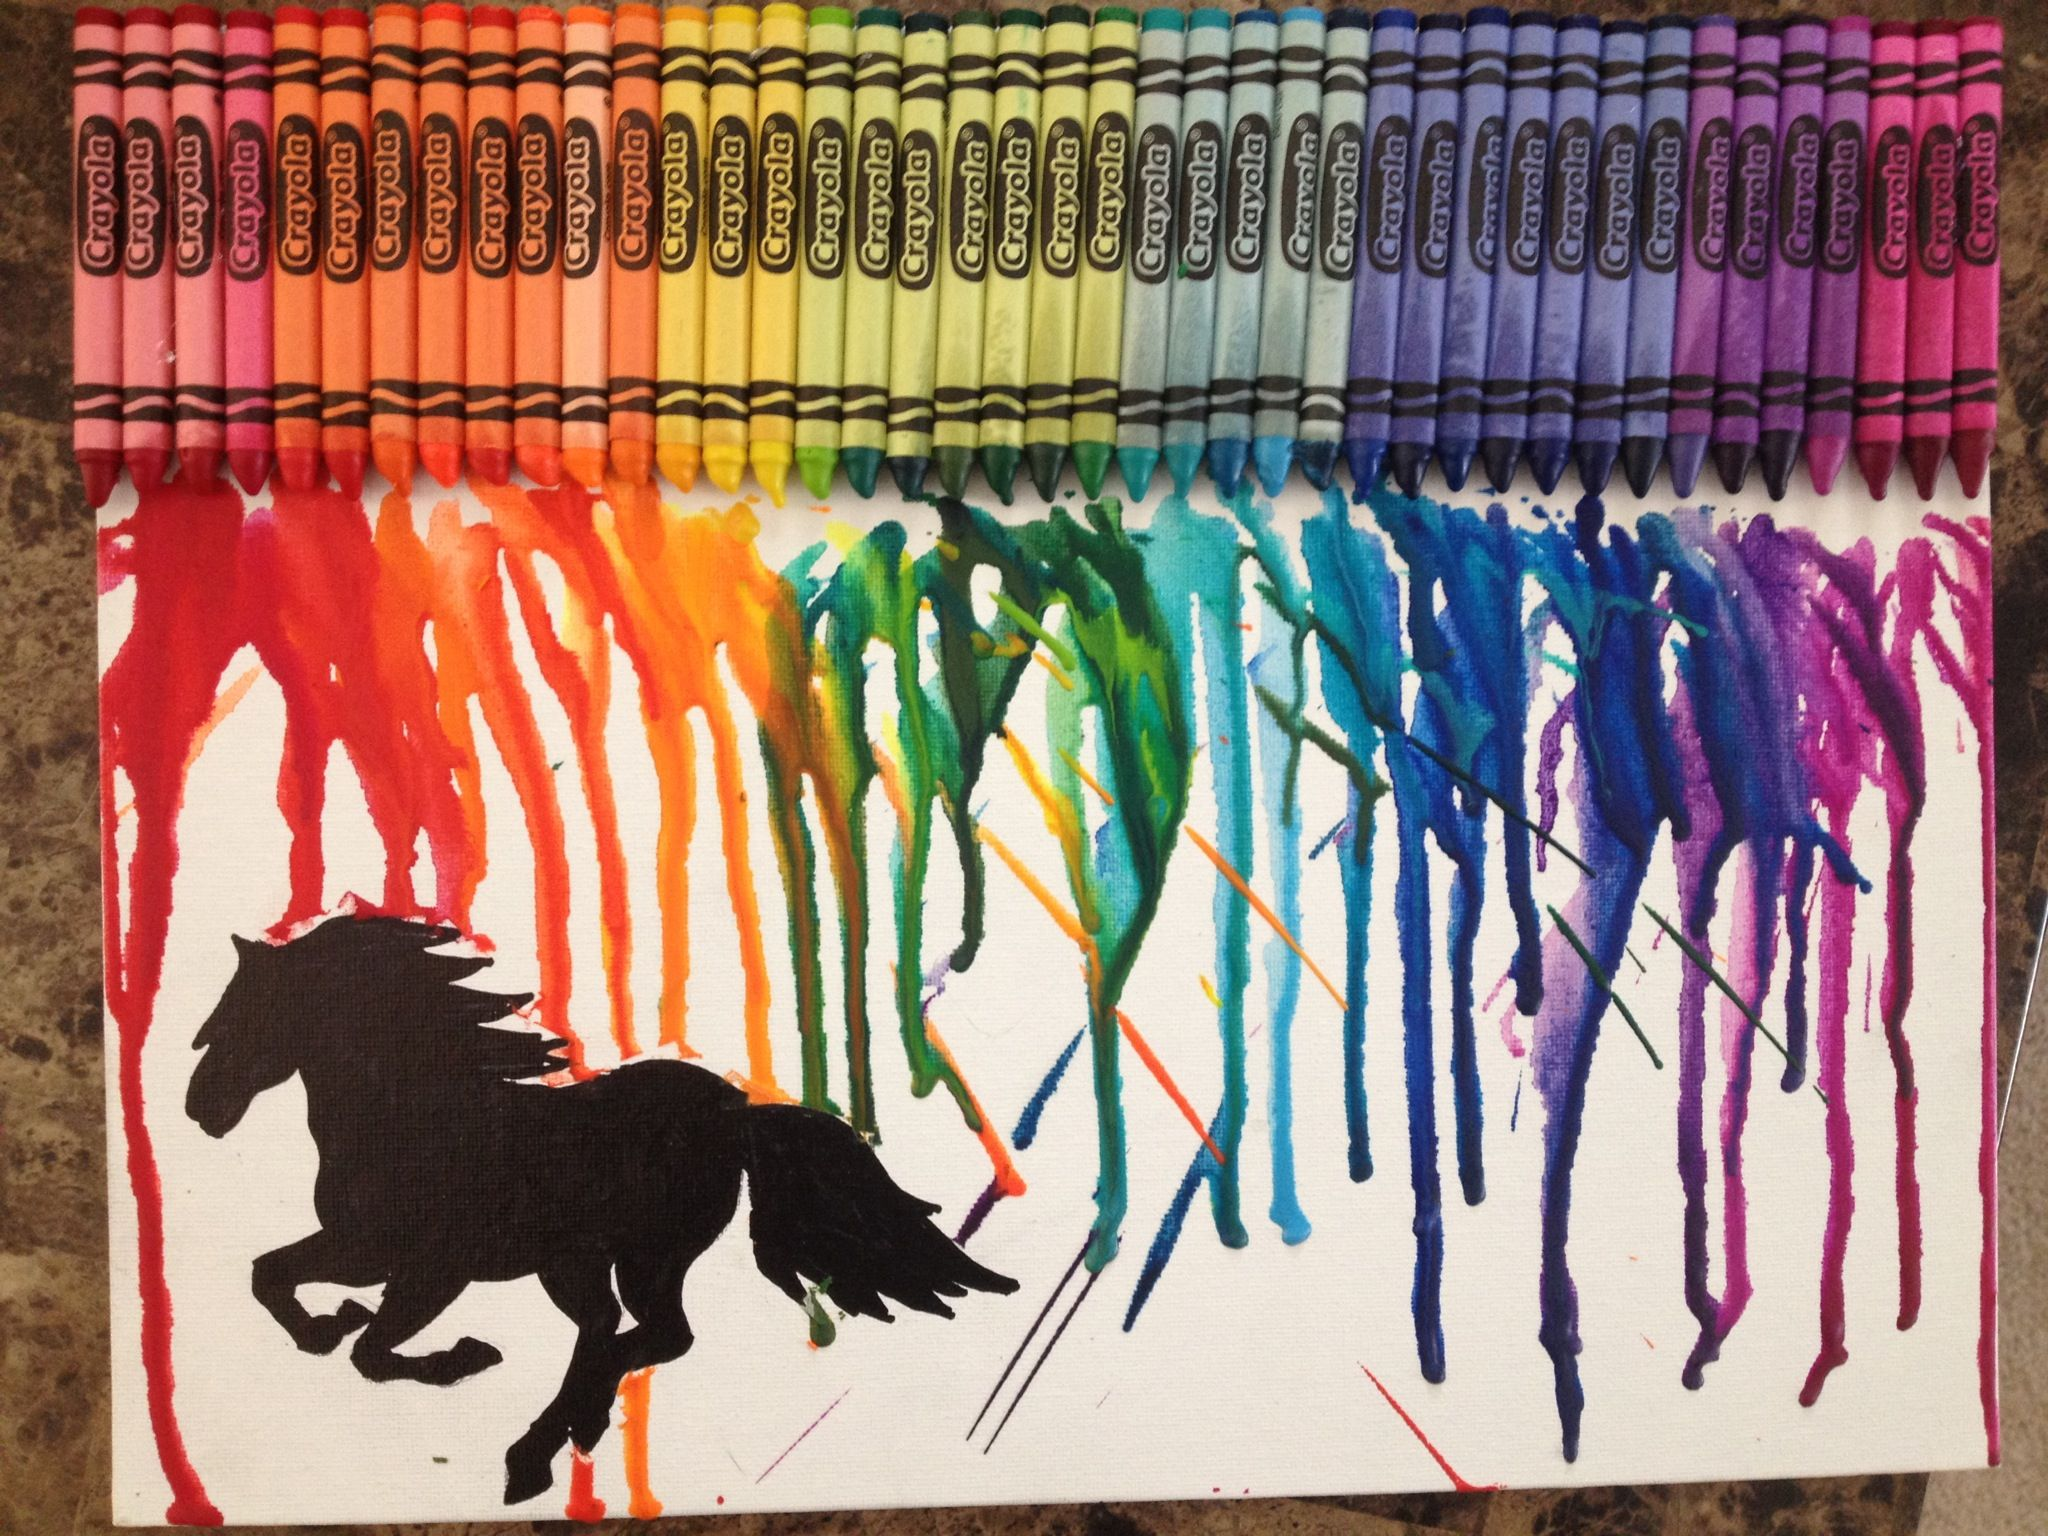 Horse arts and crafts - Horse Silhouette Crayon Art